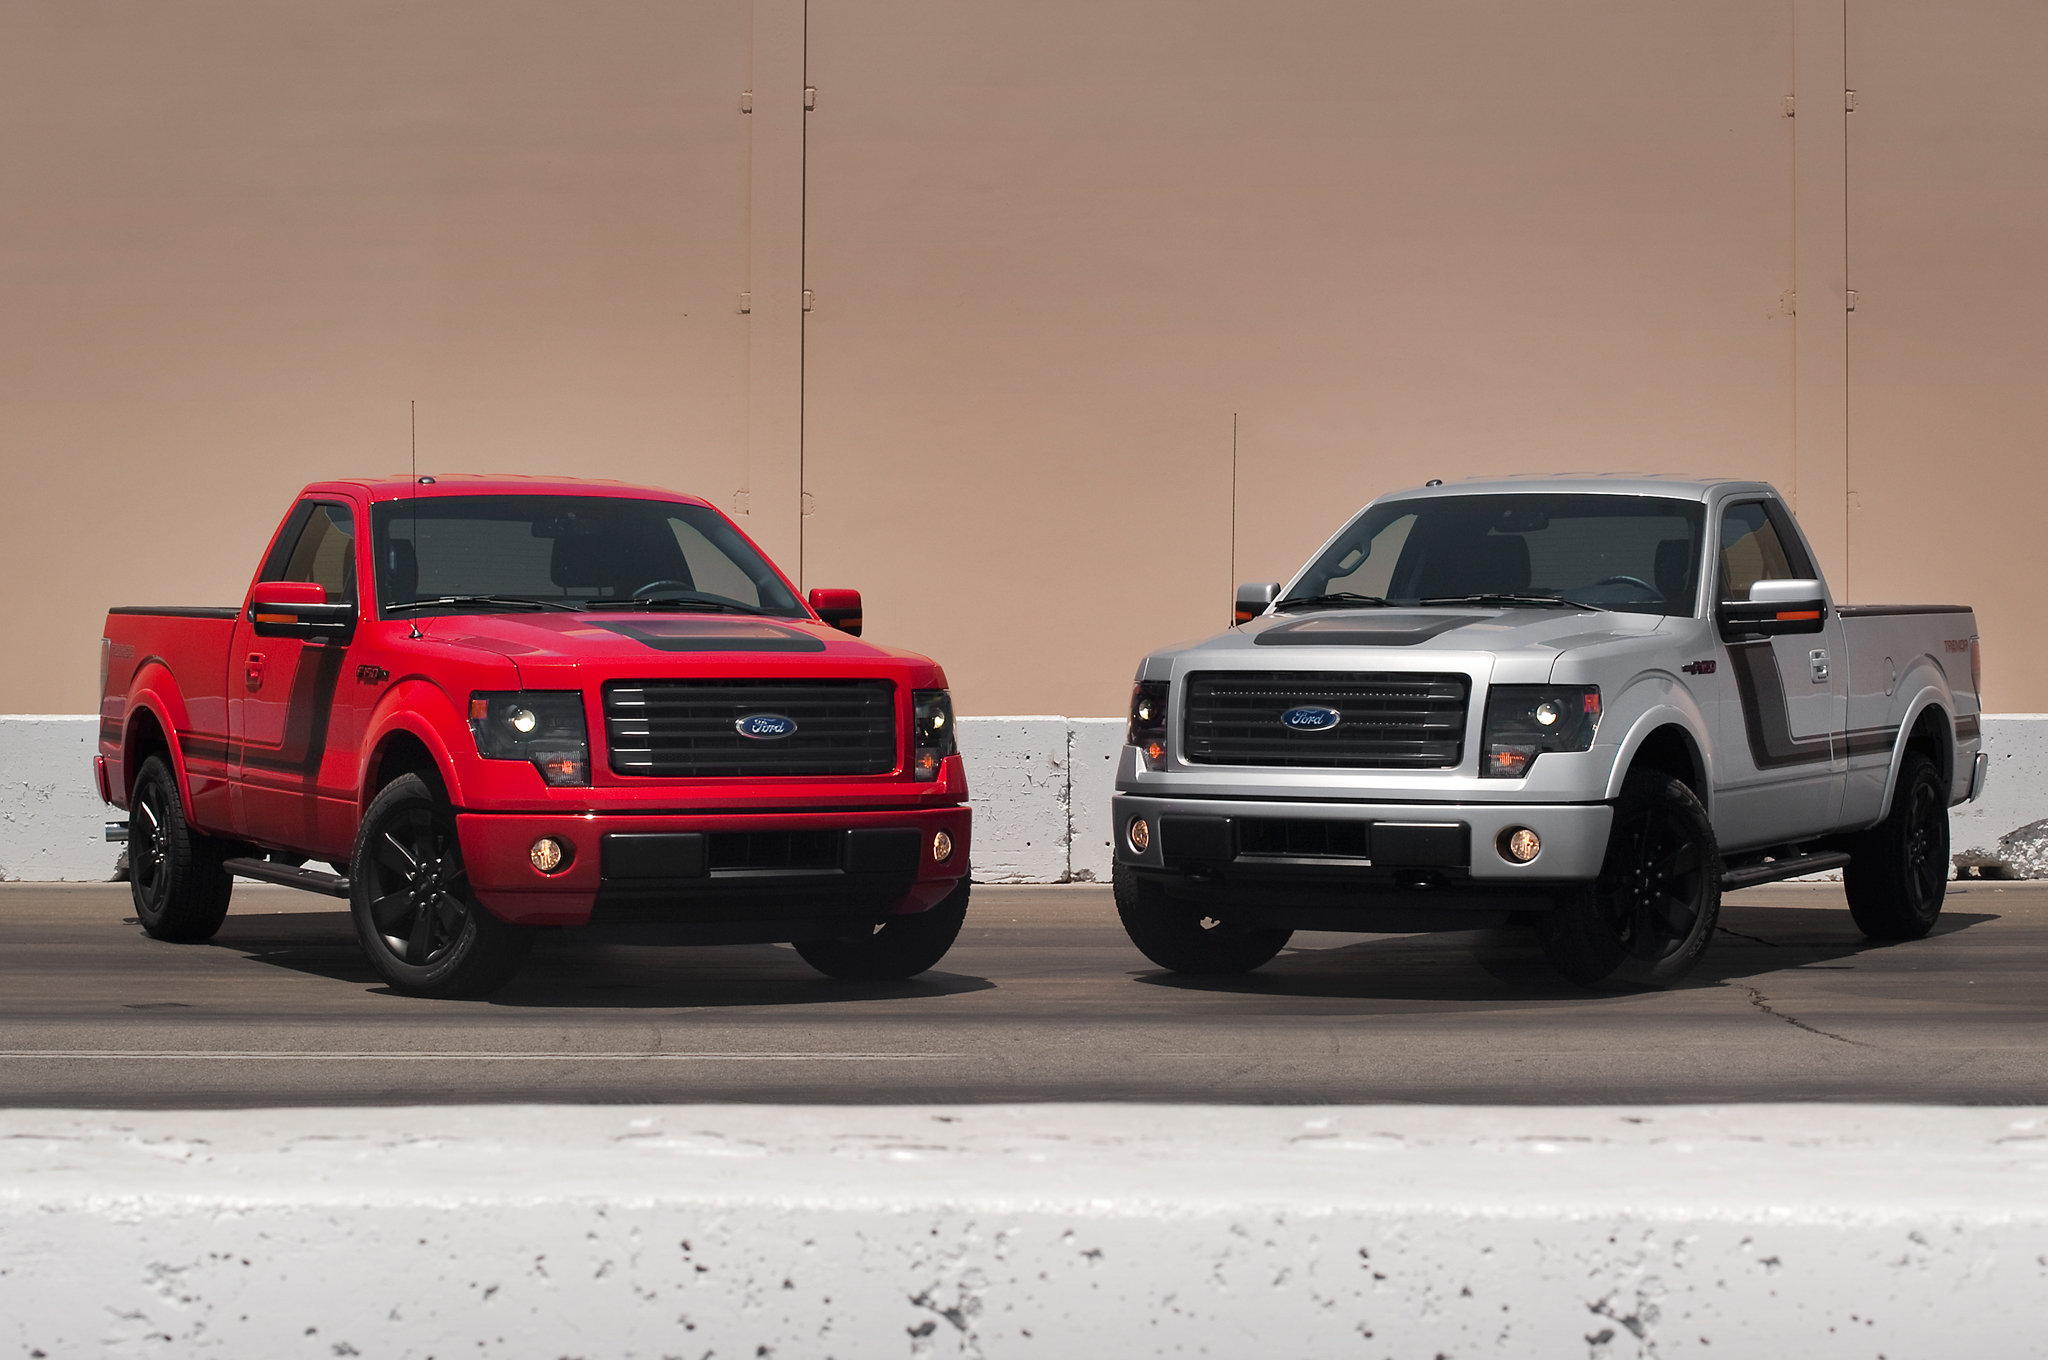 2014 Ford F150 Tremor Fx2 Fx4 First Test Motor Trend. 2014 Ford F150 Tremor Fx2 Fx4 First Test. Wiring. Turbo 2013 F 150 Wiring Schematic At Scoala.co